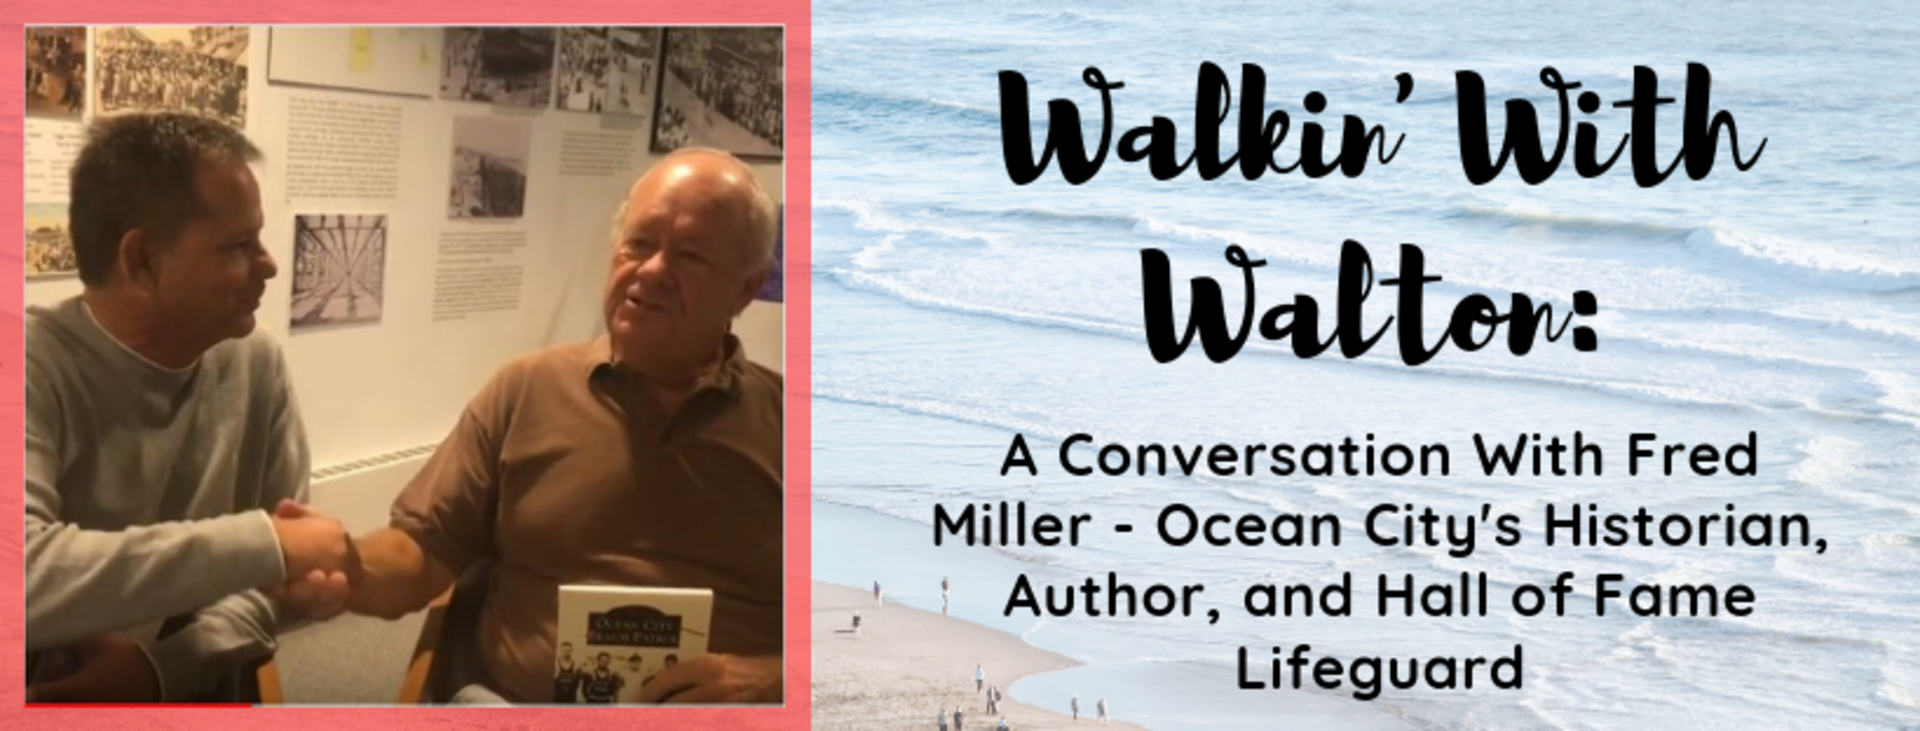 Walkin' With Walton – A Conversation with Fred Miller